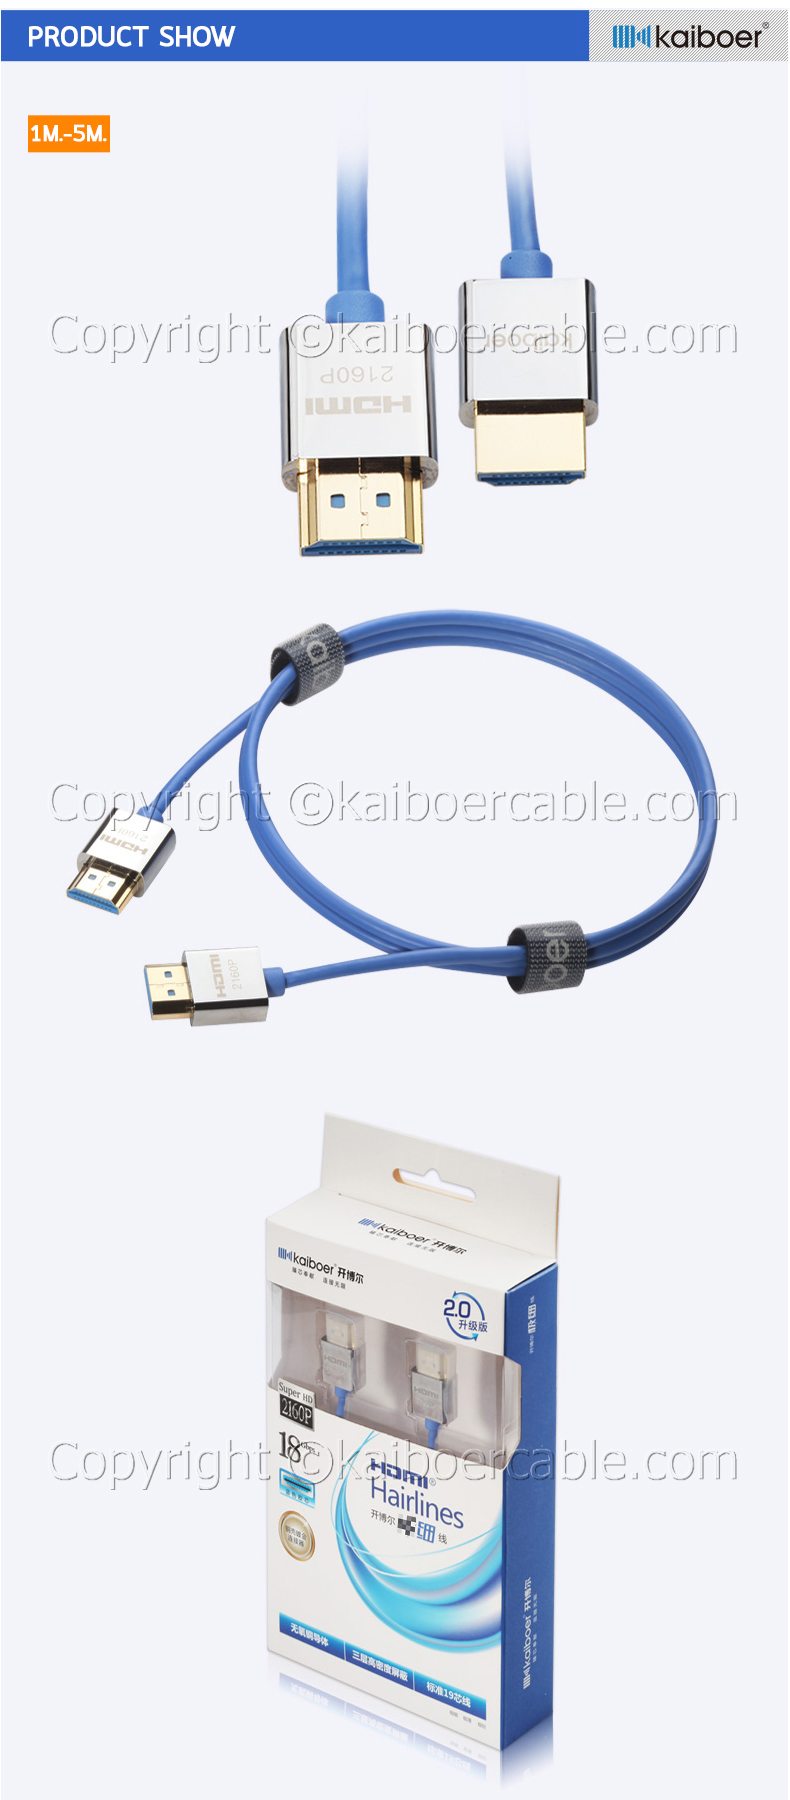 Kaiboer_KBE_HD_Series_Fashion_HDMI_Cable_5